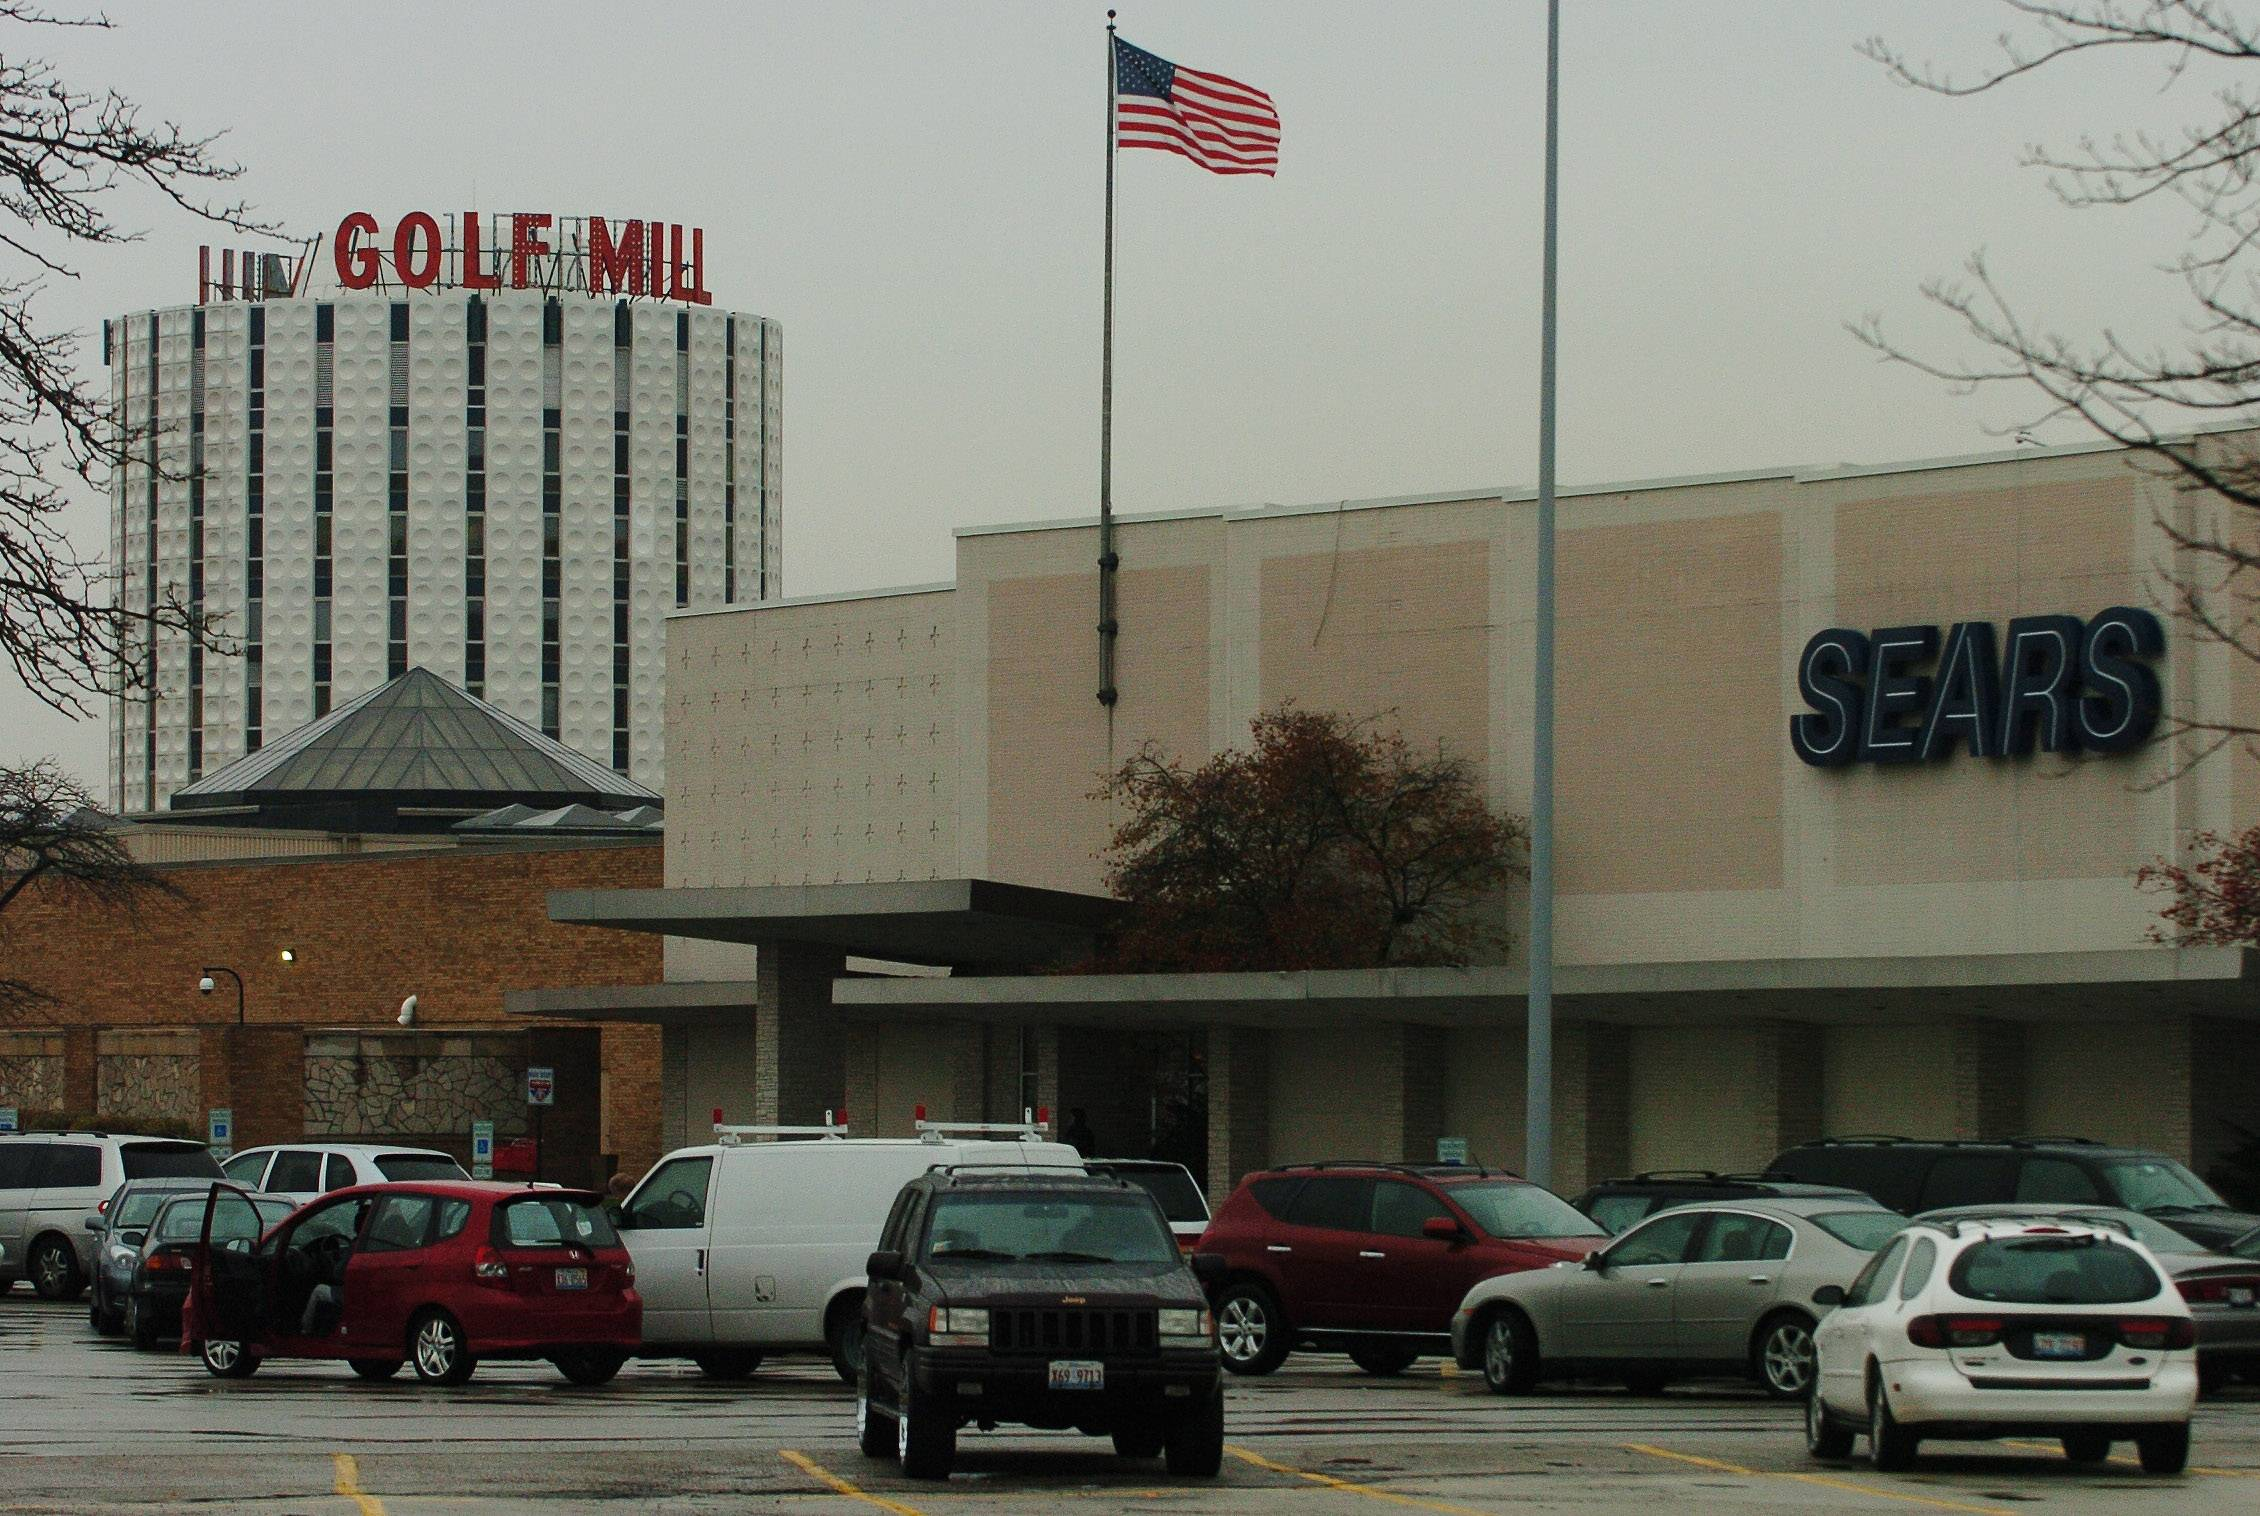 Florida-based Sterling Organization said Wednesday it had purchased a majority of the Golf Mill Shopping Center in Niles for $60 million.